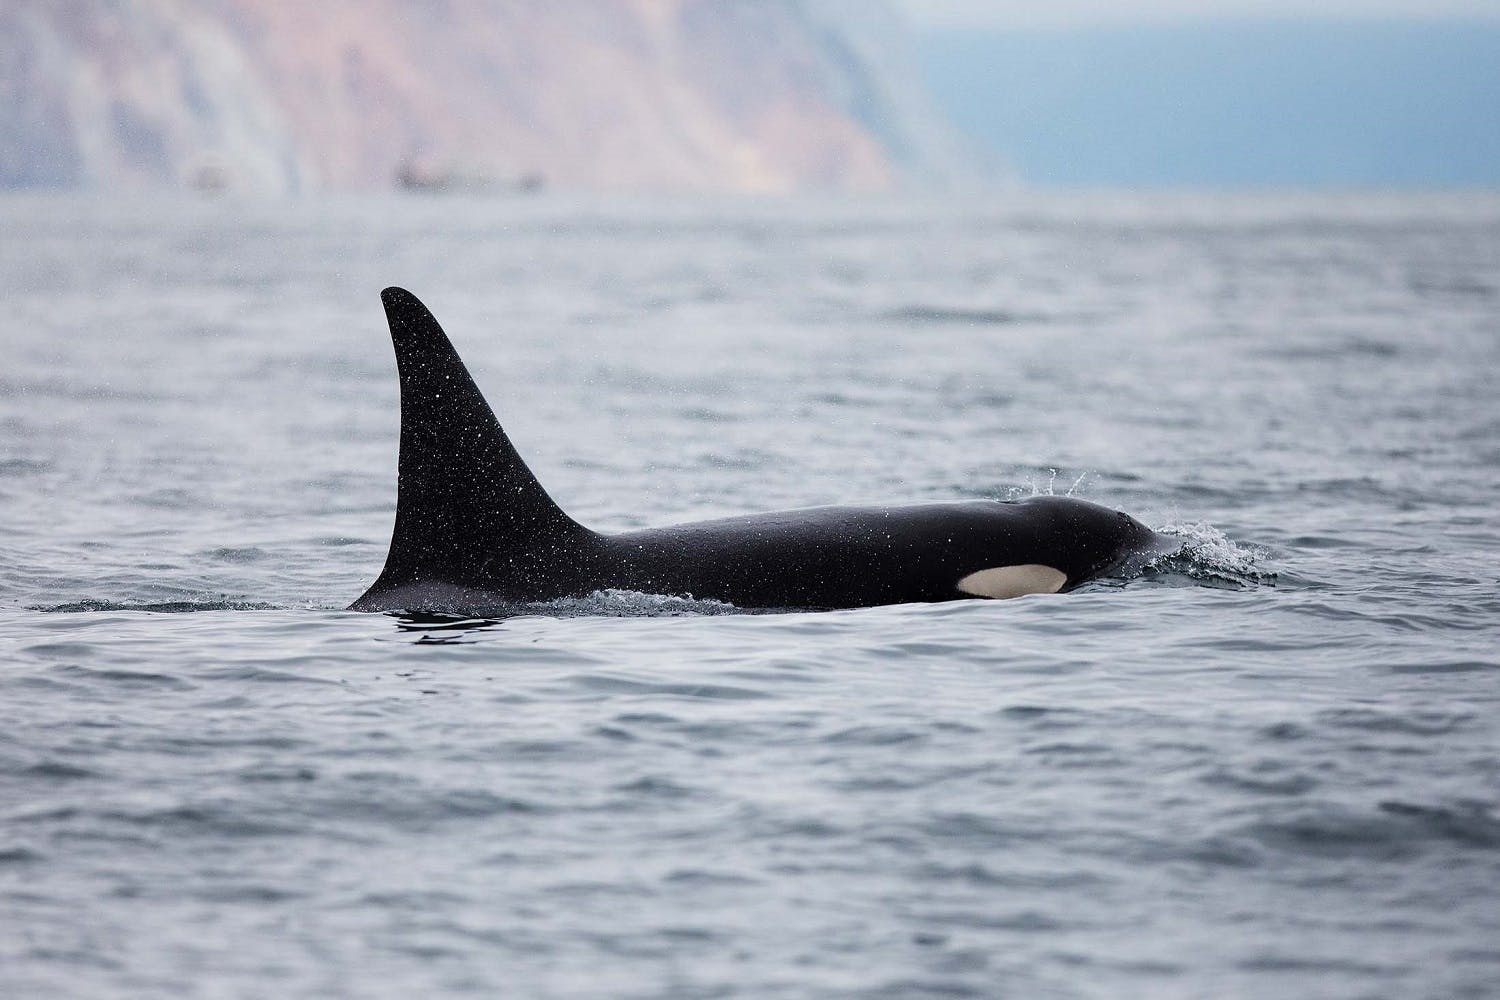 Orcas in the wild - Kekurnyy Bay, Russian Far East